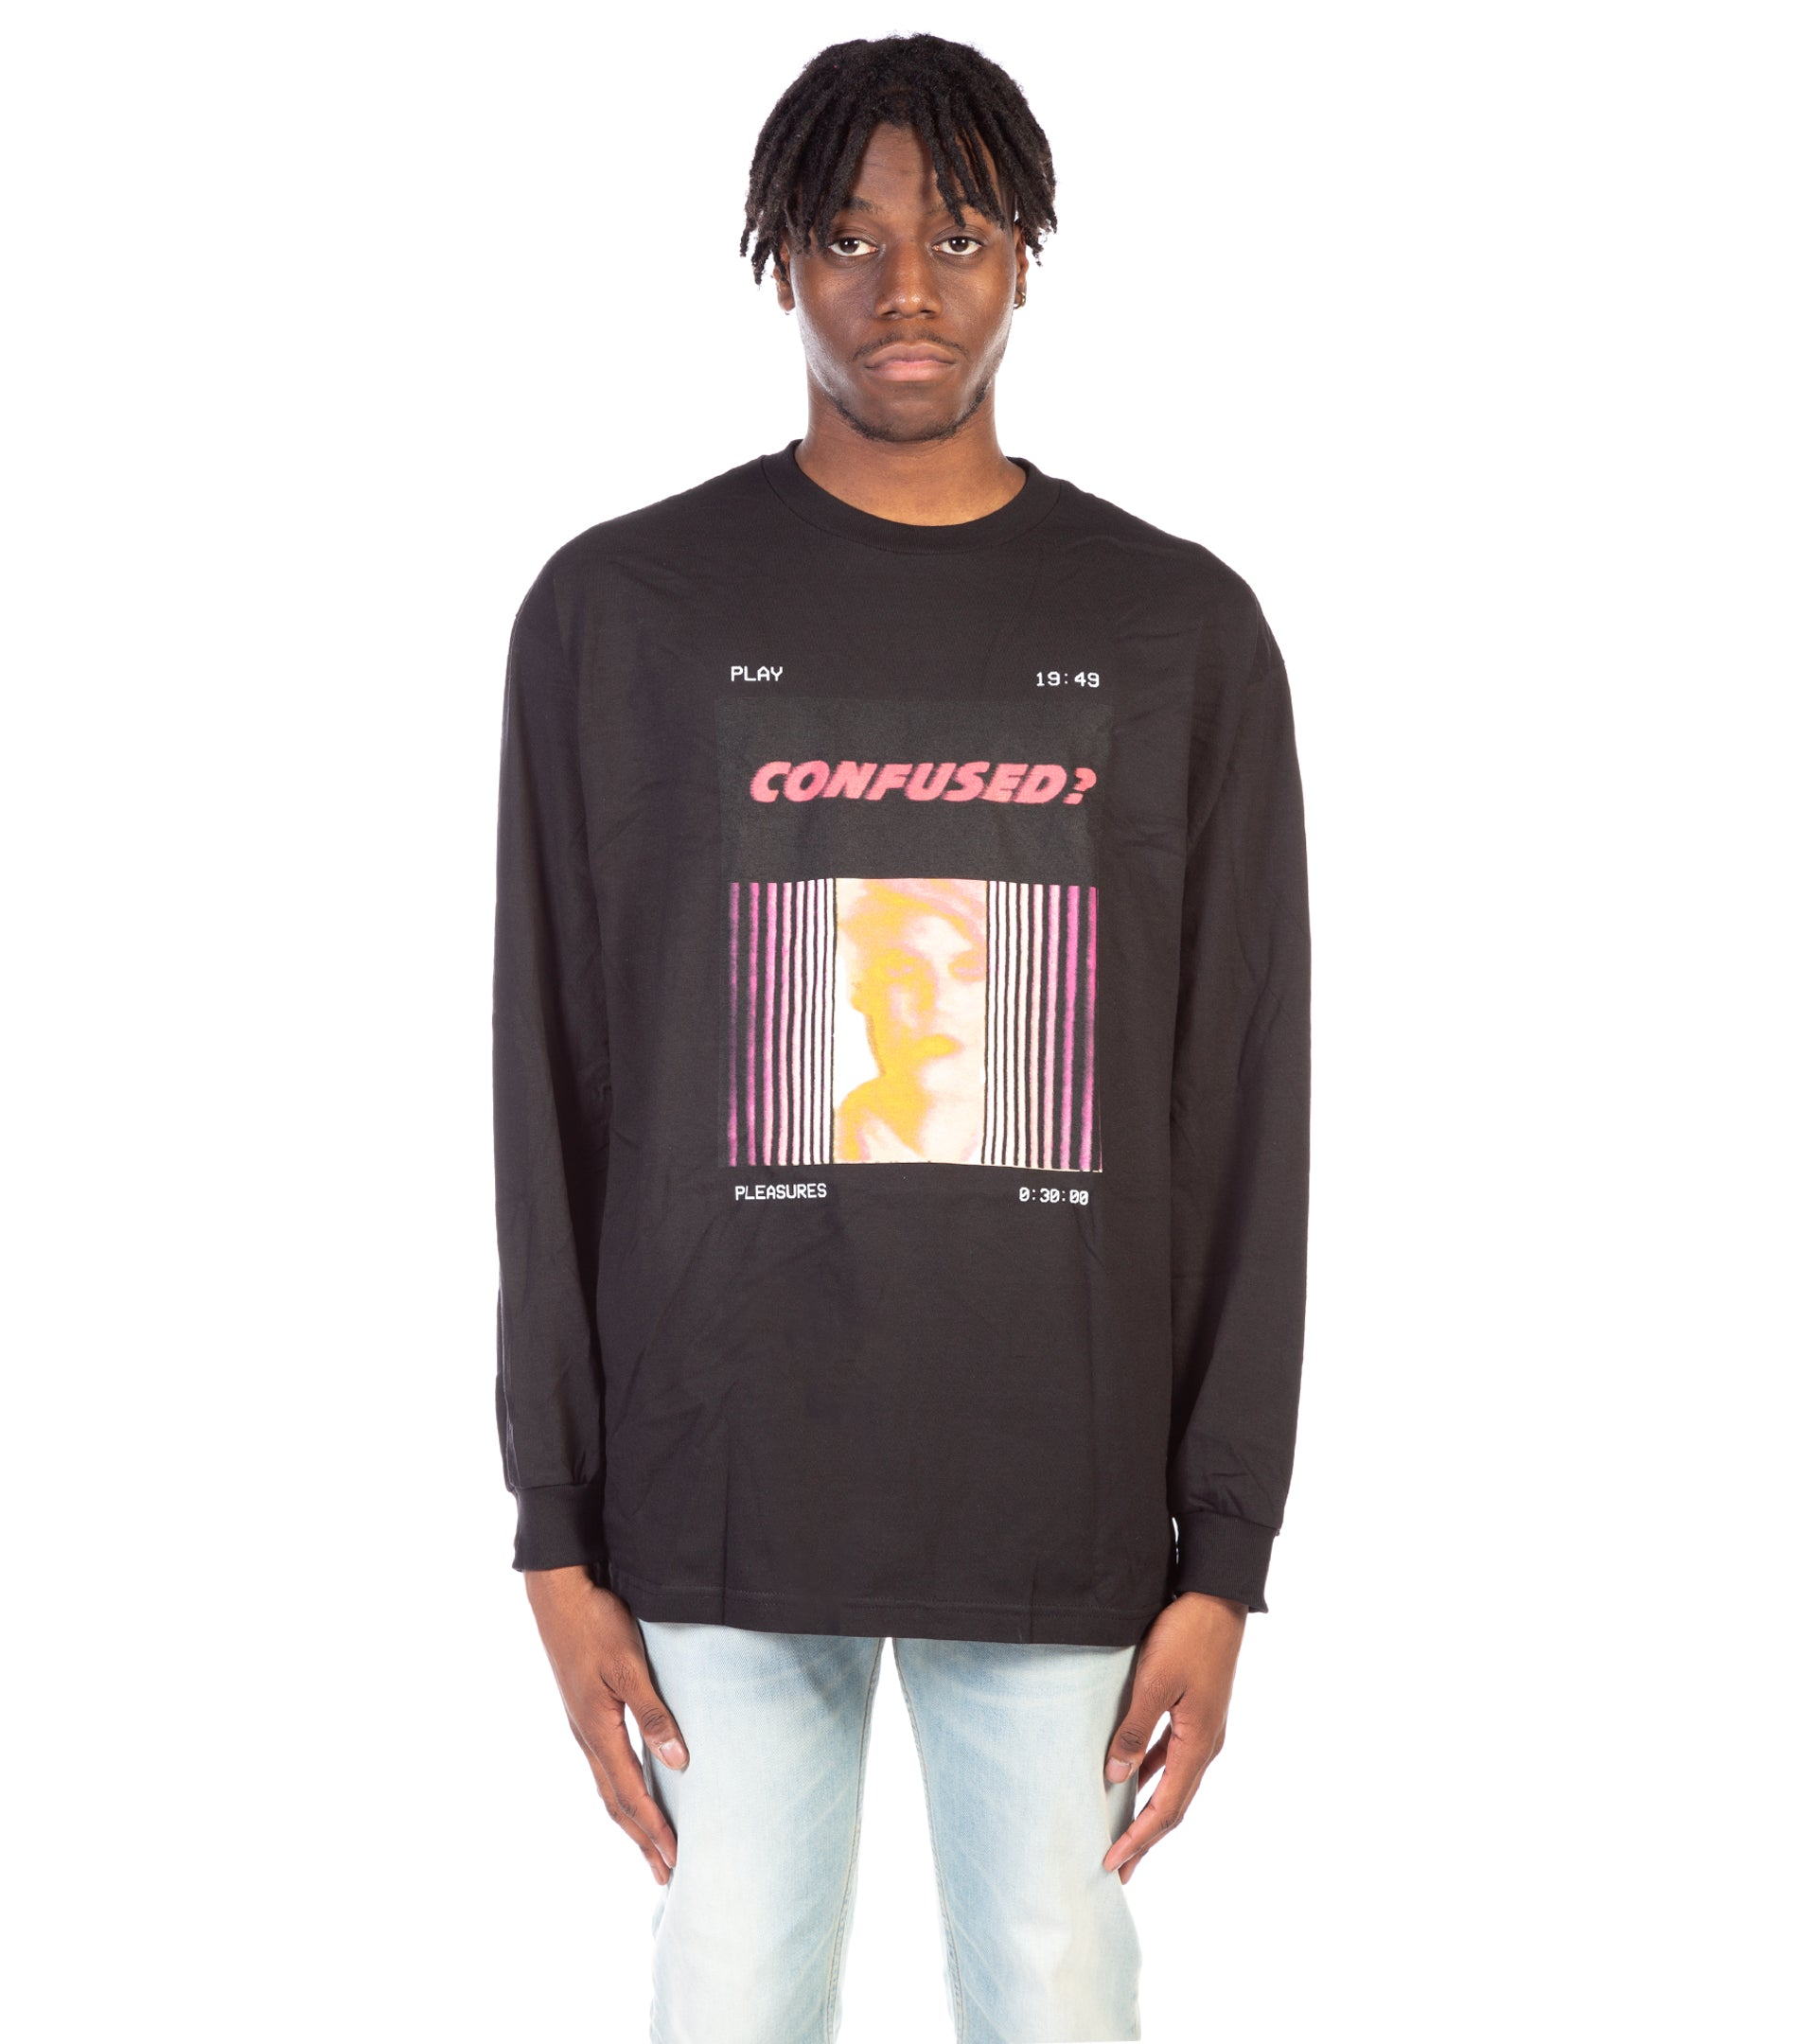 CONFUSED LONGSLEEVE T-SHIRT